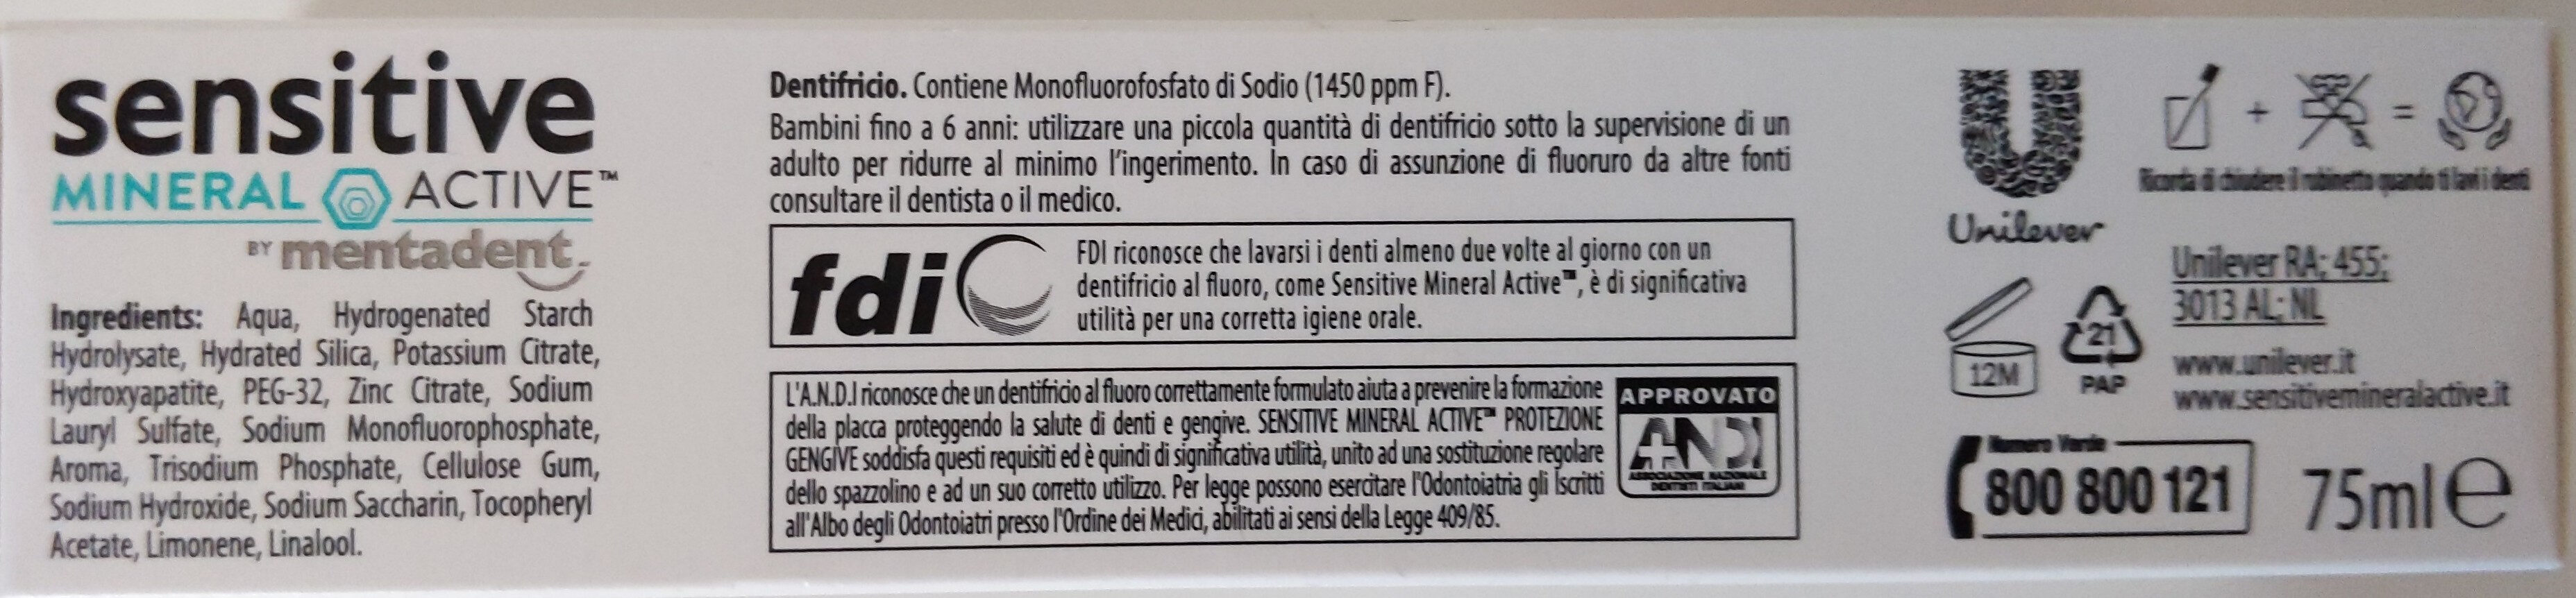 Sensitive mineral active Protezione gengive by Mentadent - Product - en